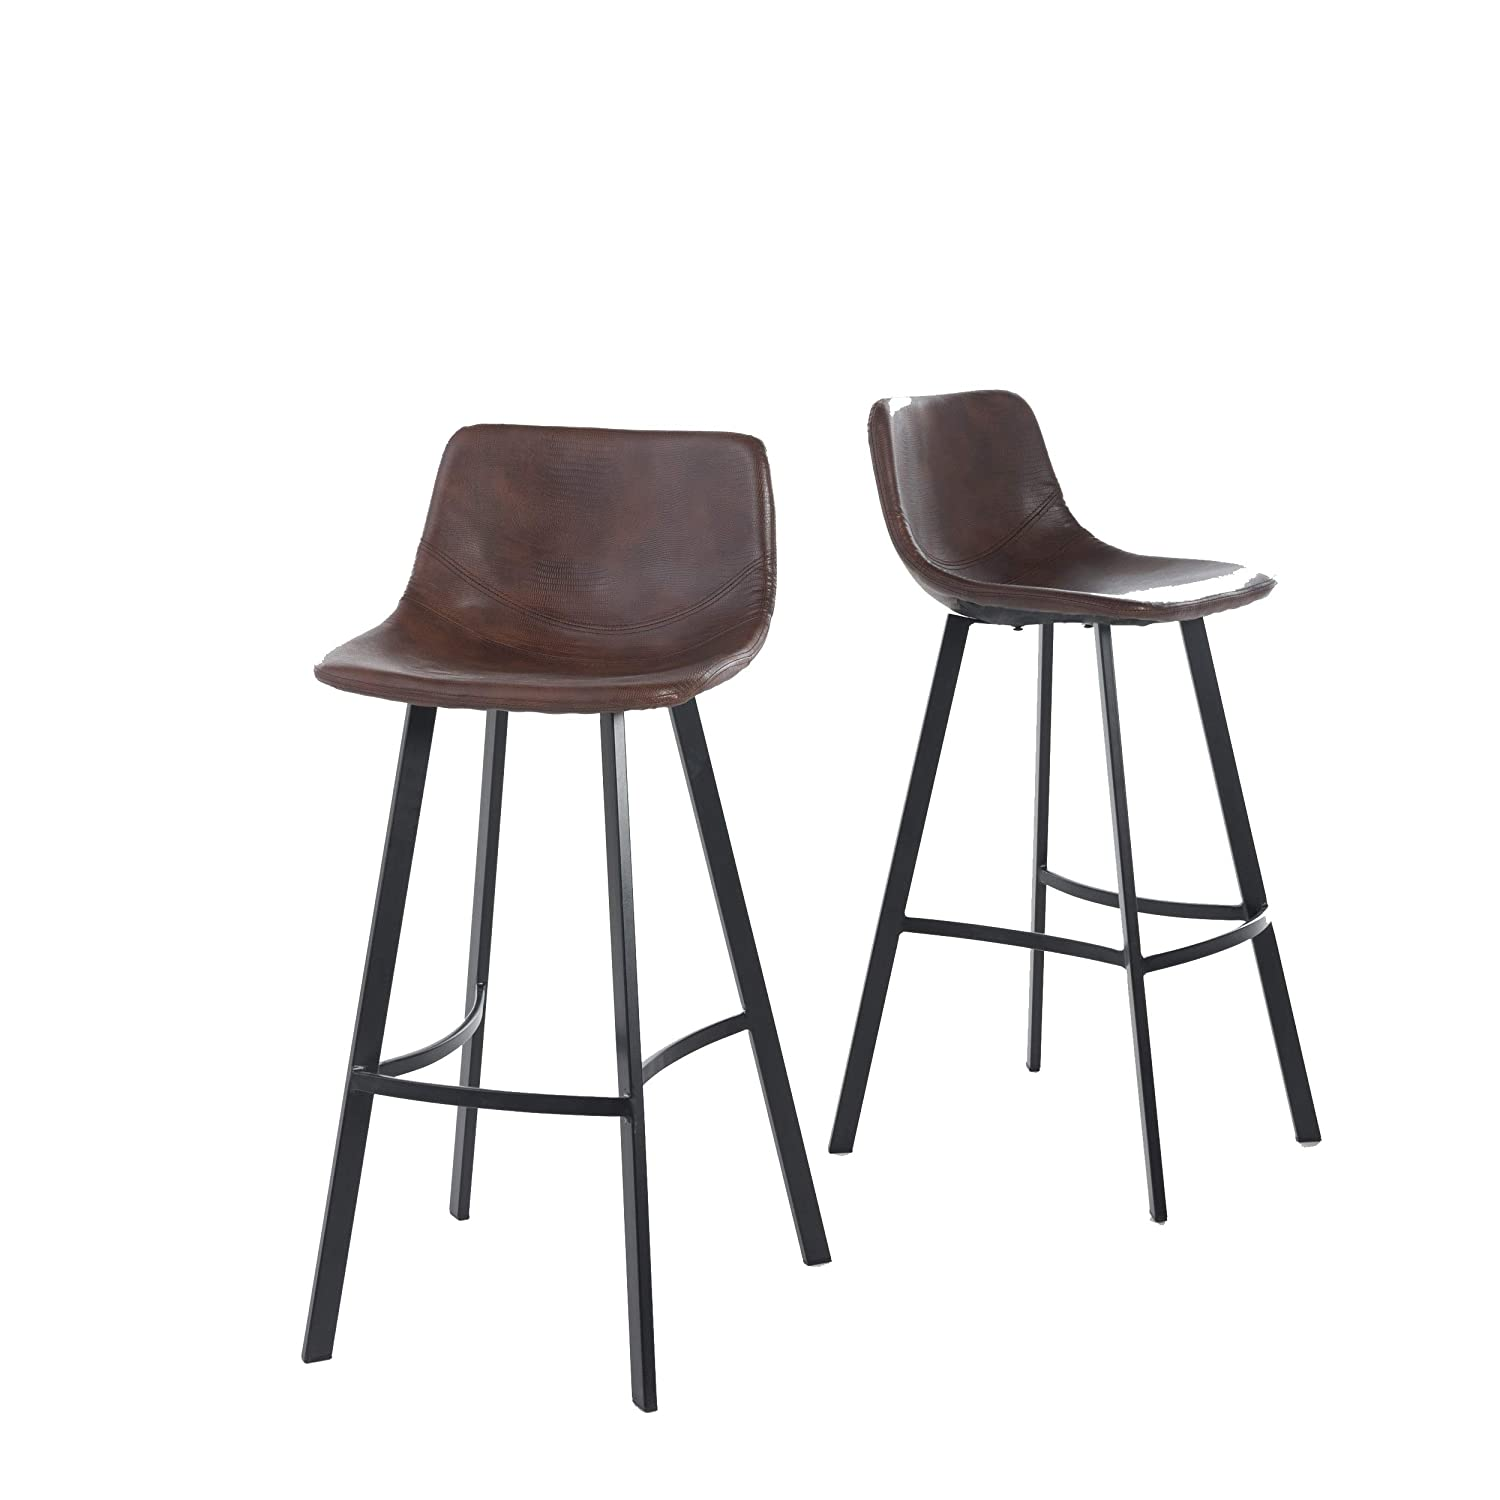 Christopher Knight Home 298406 Dax Snake Skin Brown Bar Stool (Set of 2),